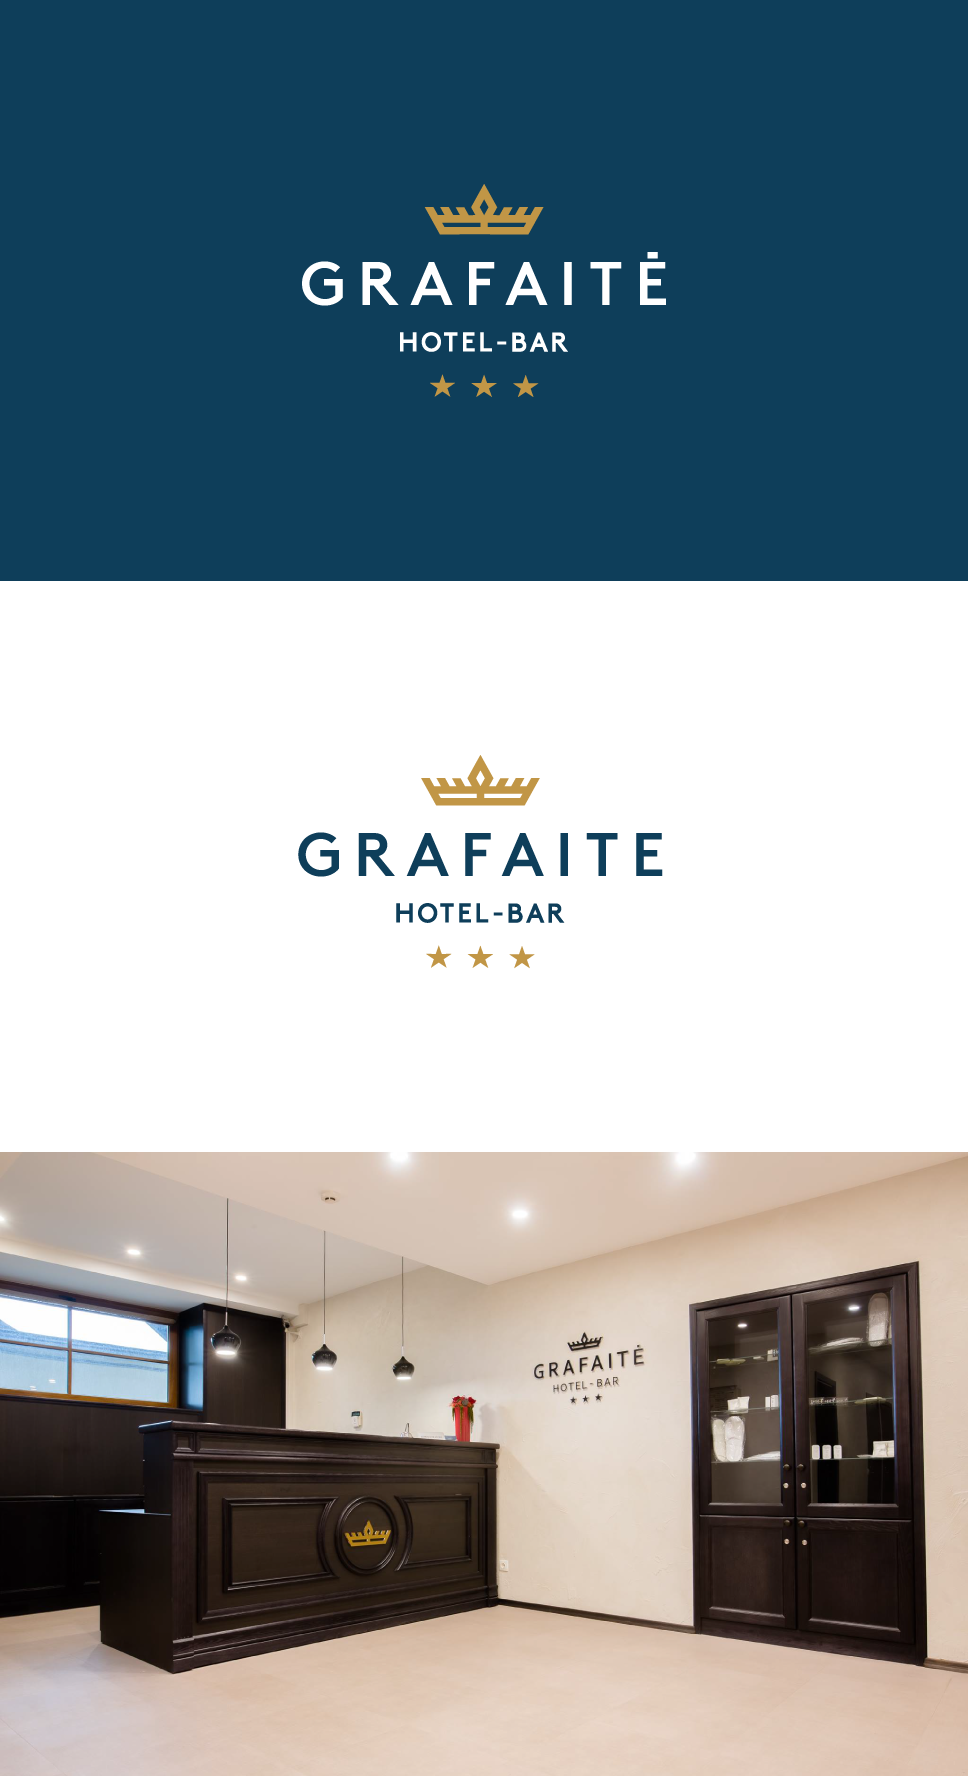 crown hotel logo design. Bar logo. flat logo